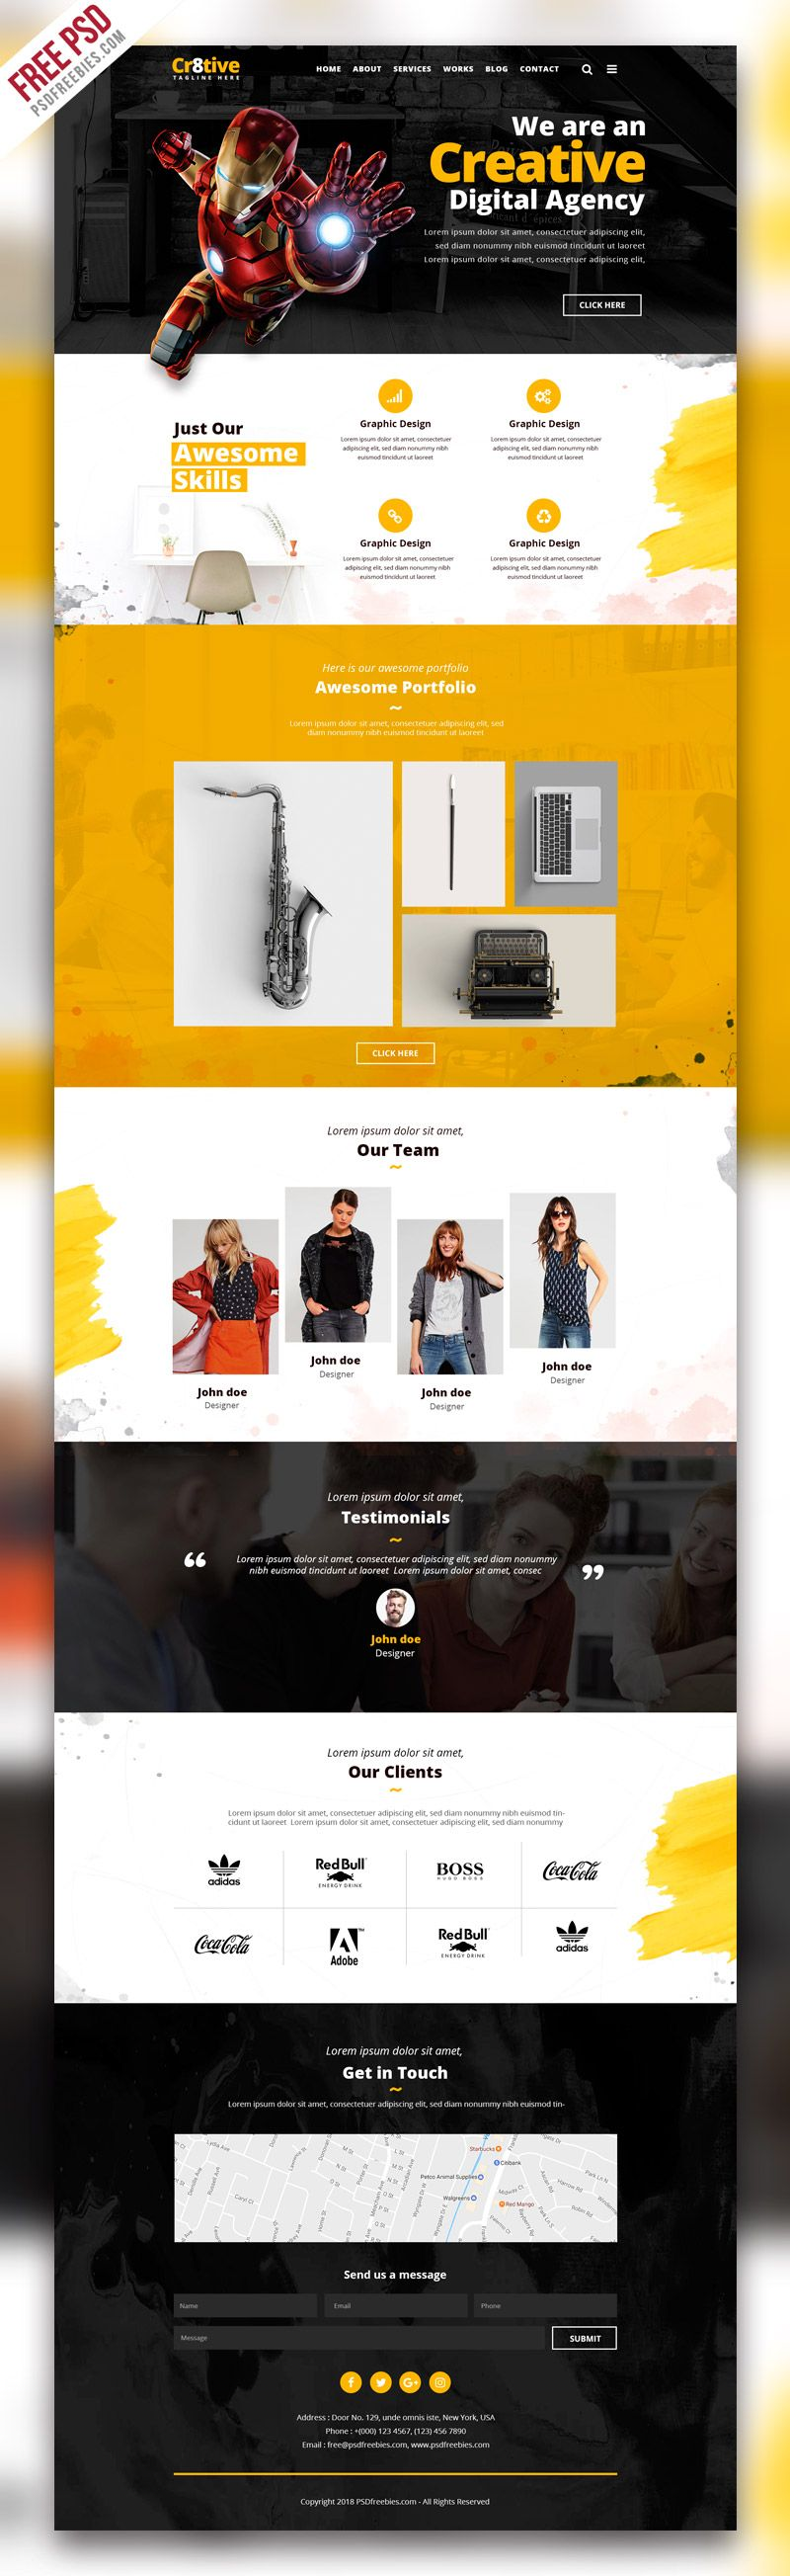 Creative Agency Portfolio Website Psd Template Psd Templates